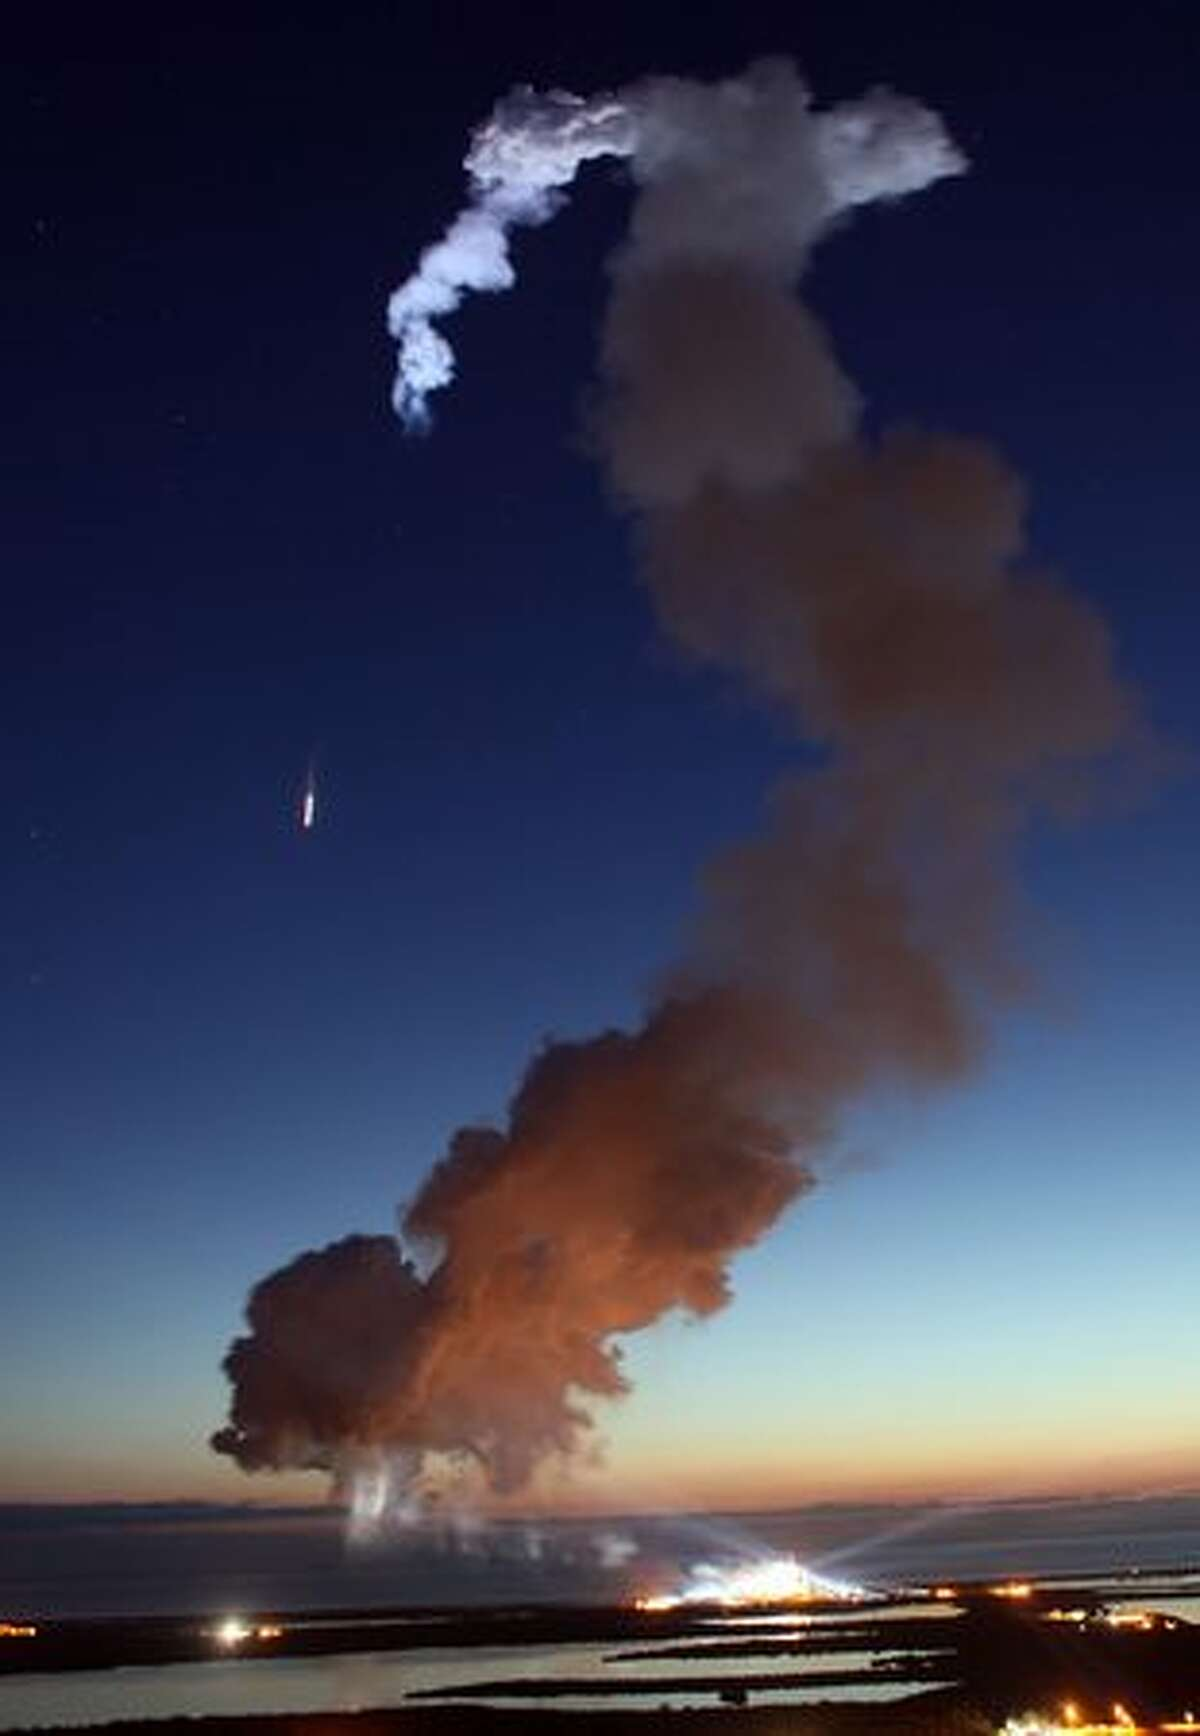 Space shuttle Discovery is seen streaking into space (to the left) as a plume of smoke floats through the air after it blasted off from launch pad 39-A at the Kennedy Space Center on April 5, 2010, in Cape Canaveral, Florida.